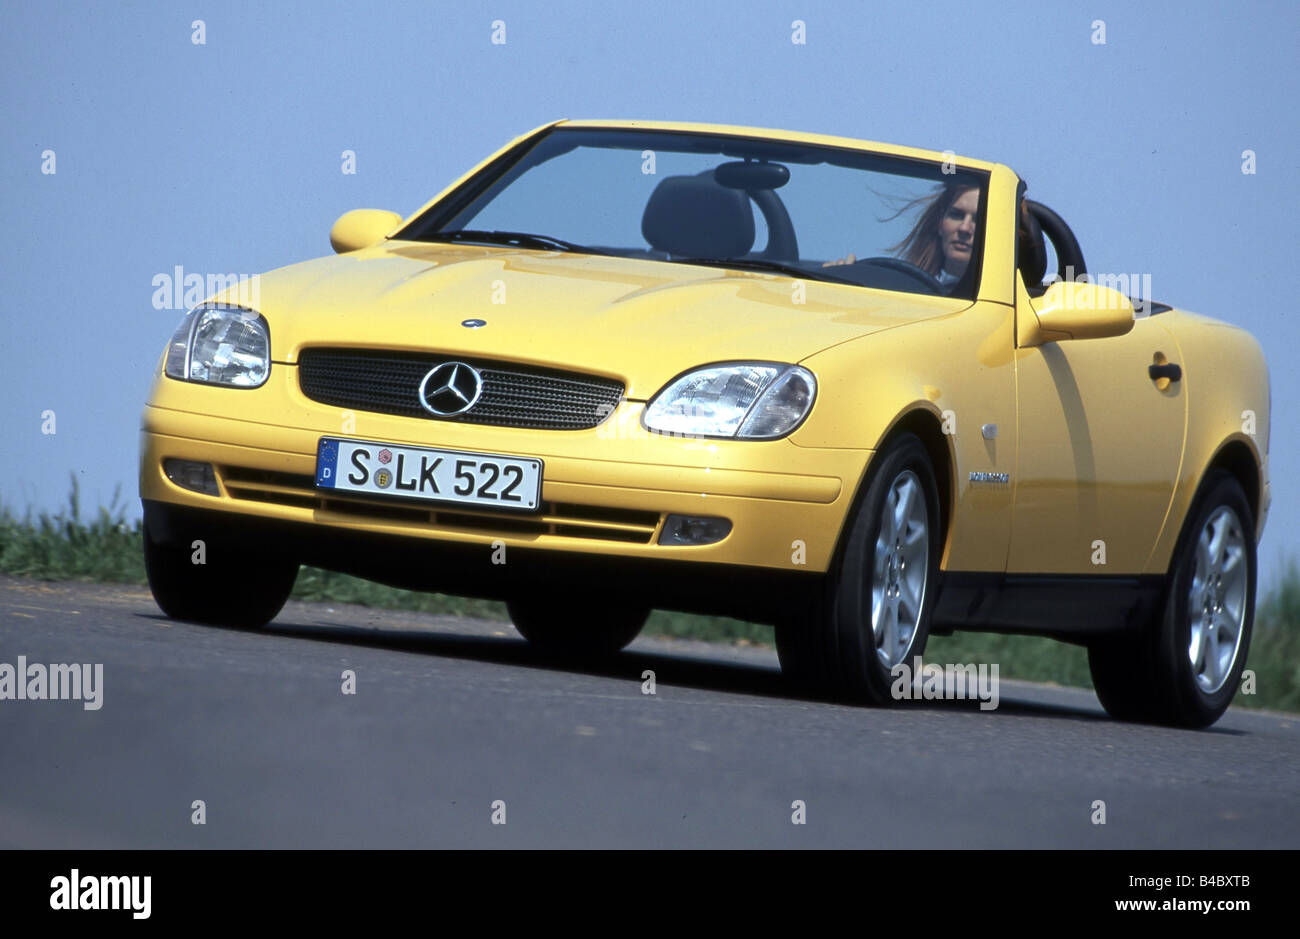 car mercedes slk convertible model year 1996 2000 yellow open stock photo royalty free. Black Bedroom Furniture Sets. Home Design Ideas